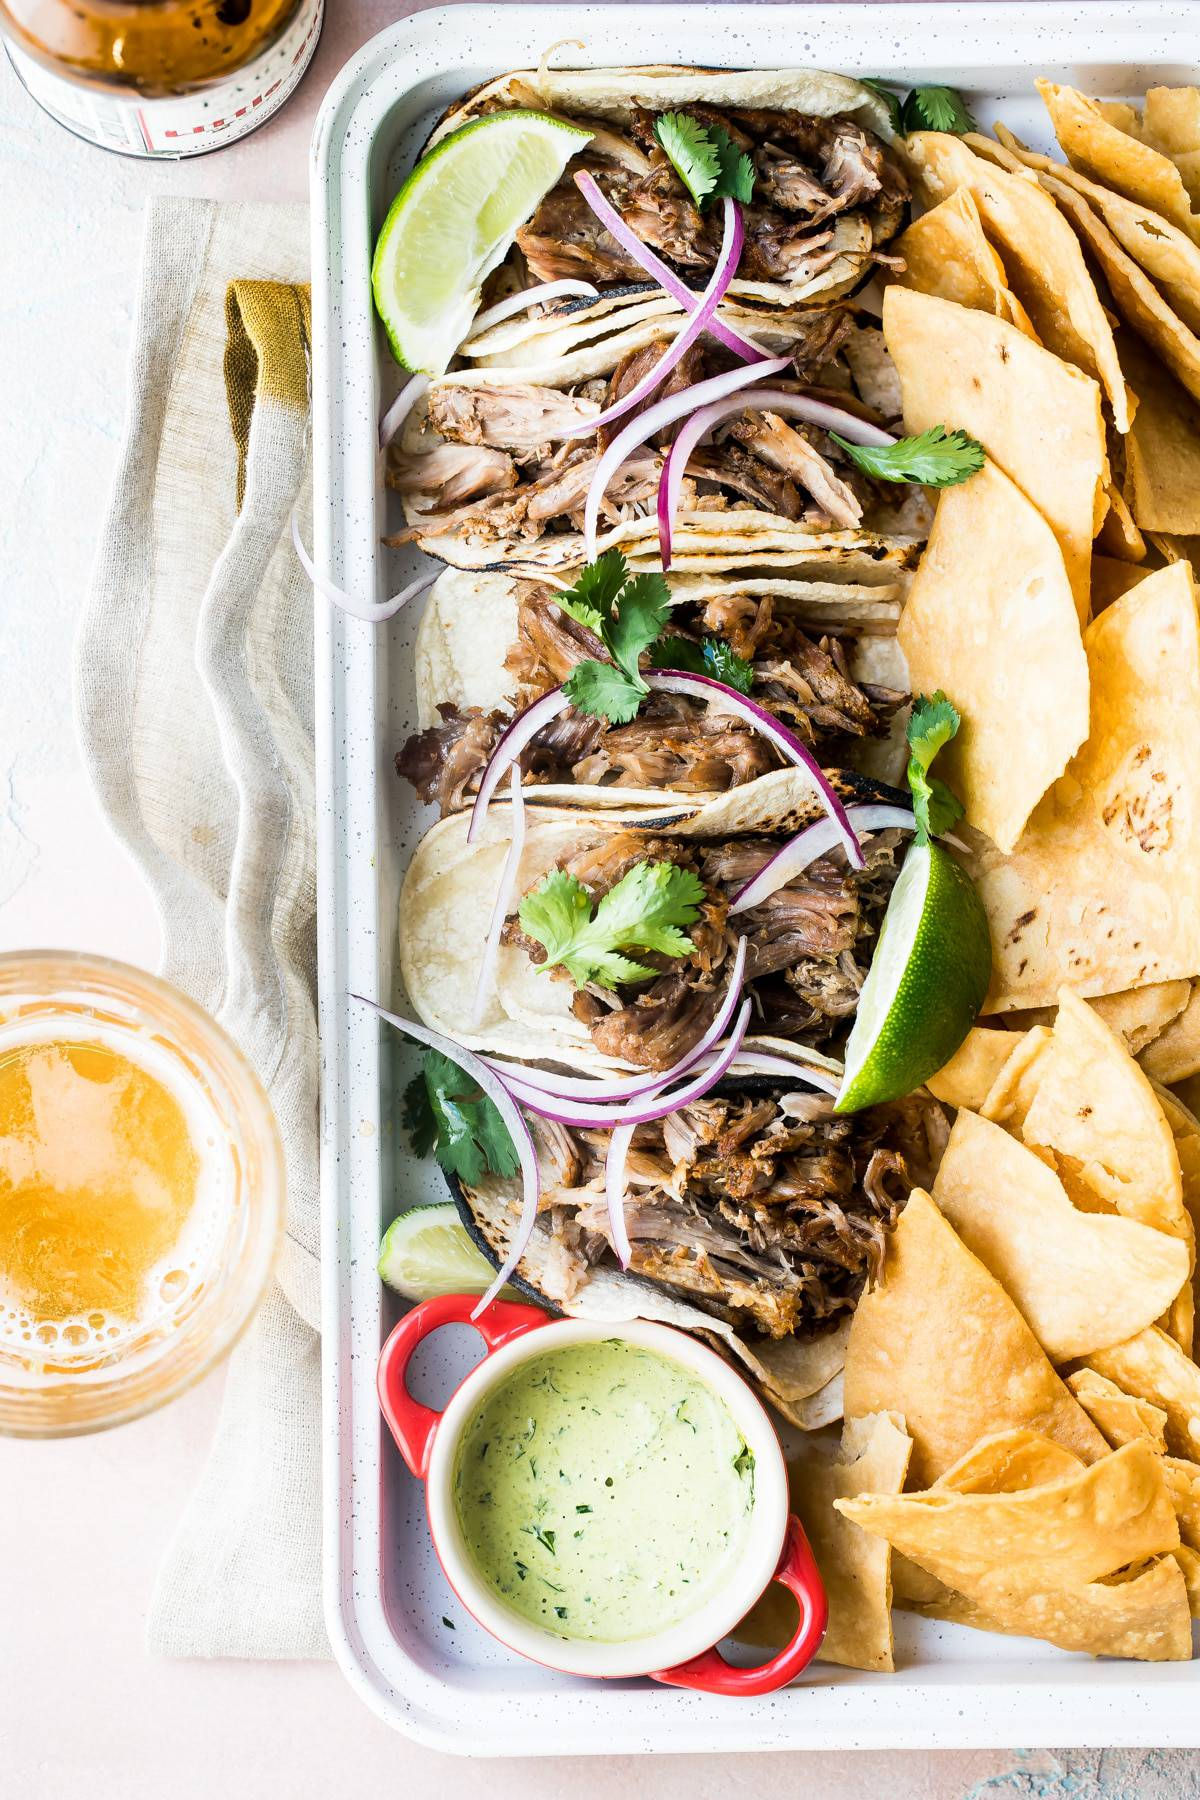 carnitas tacos on a plate with chips